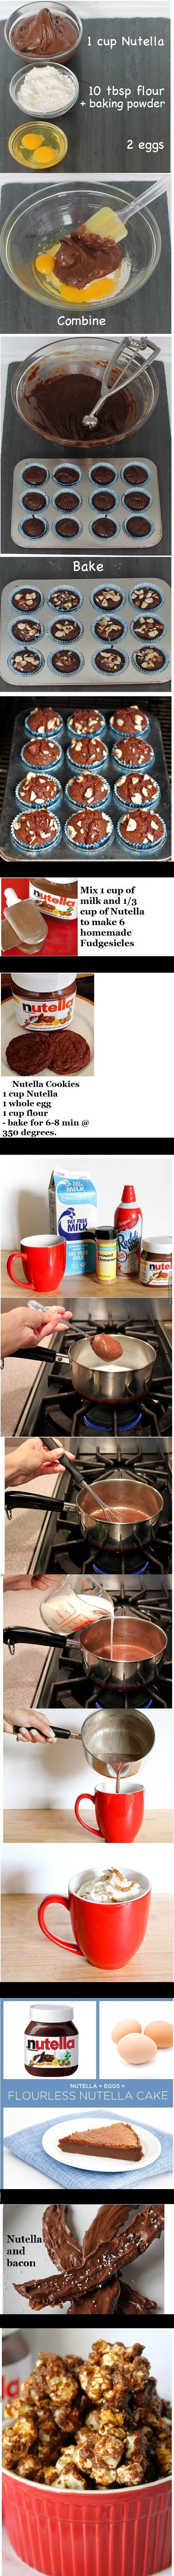 Things You Can Make With Nutella